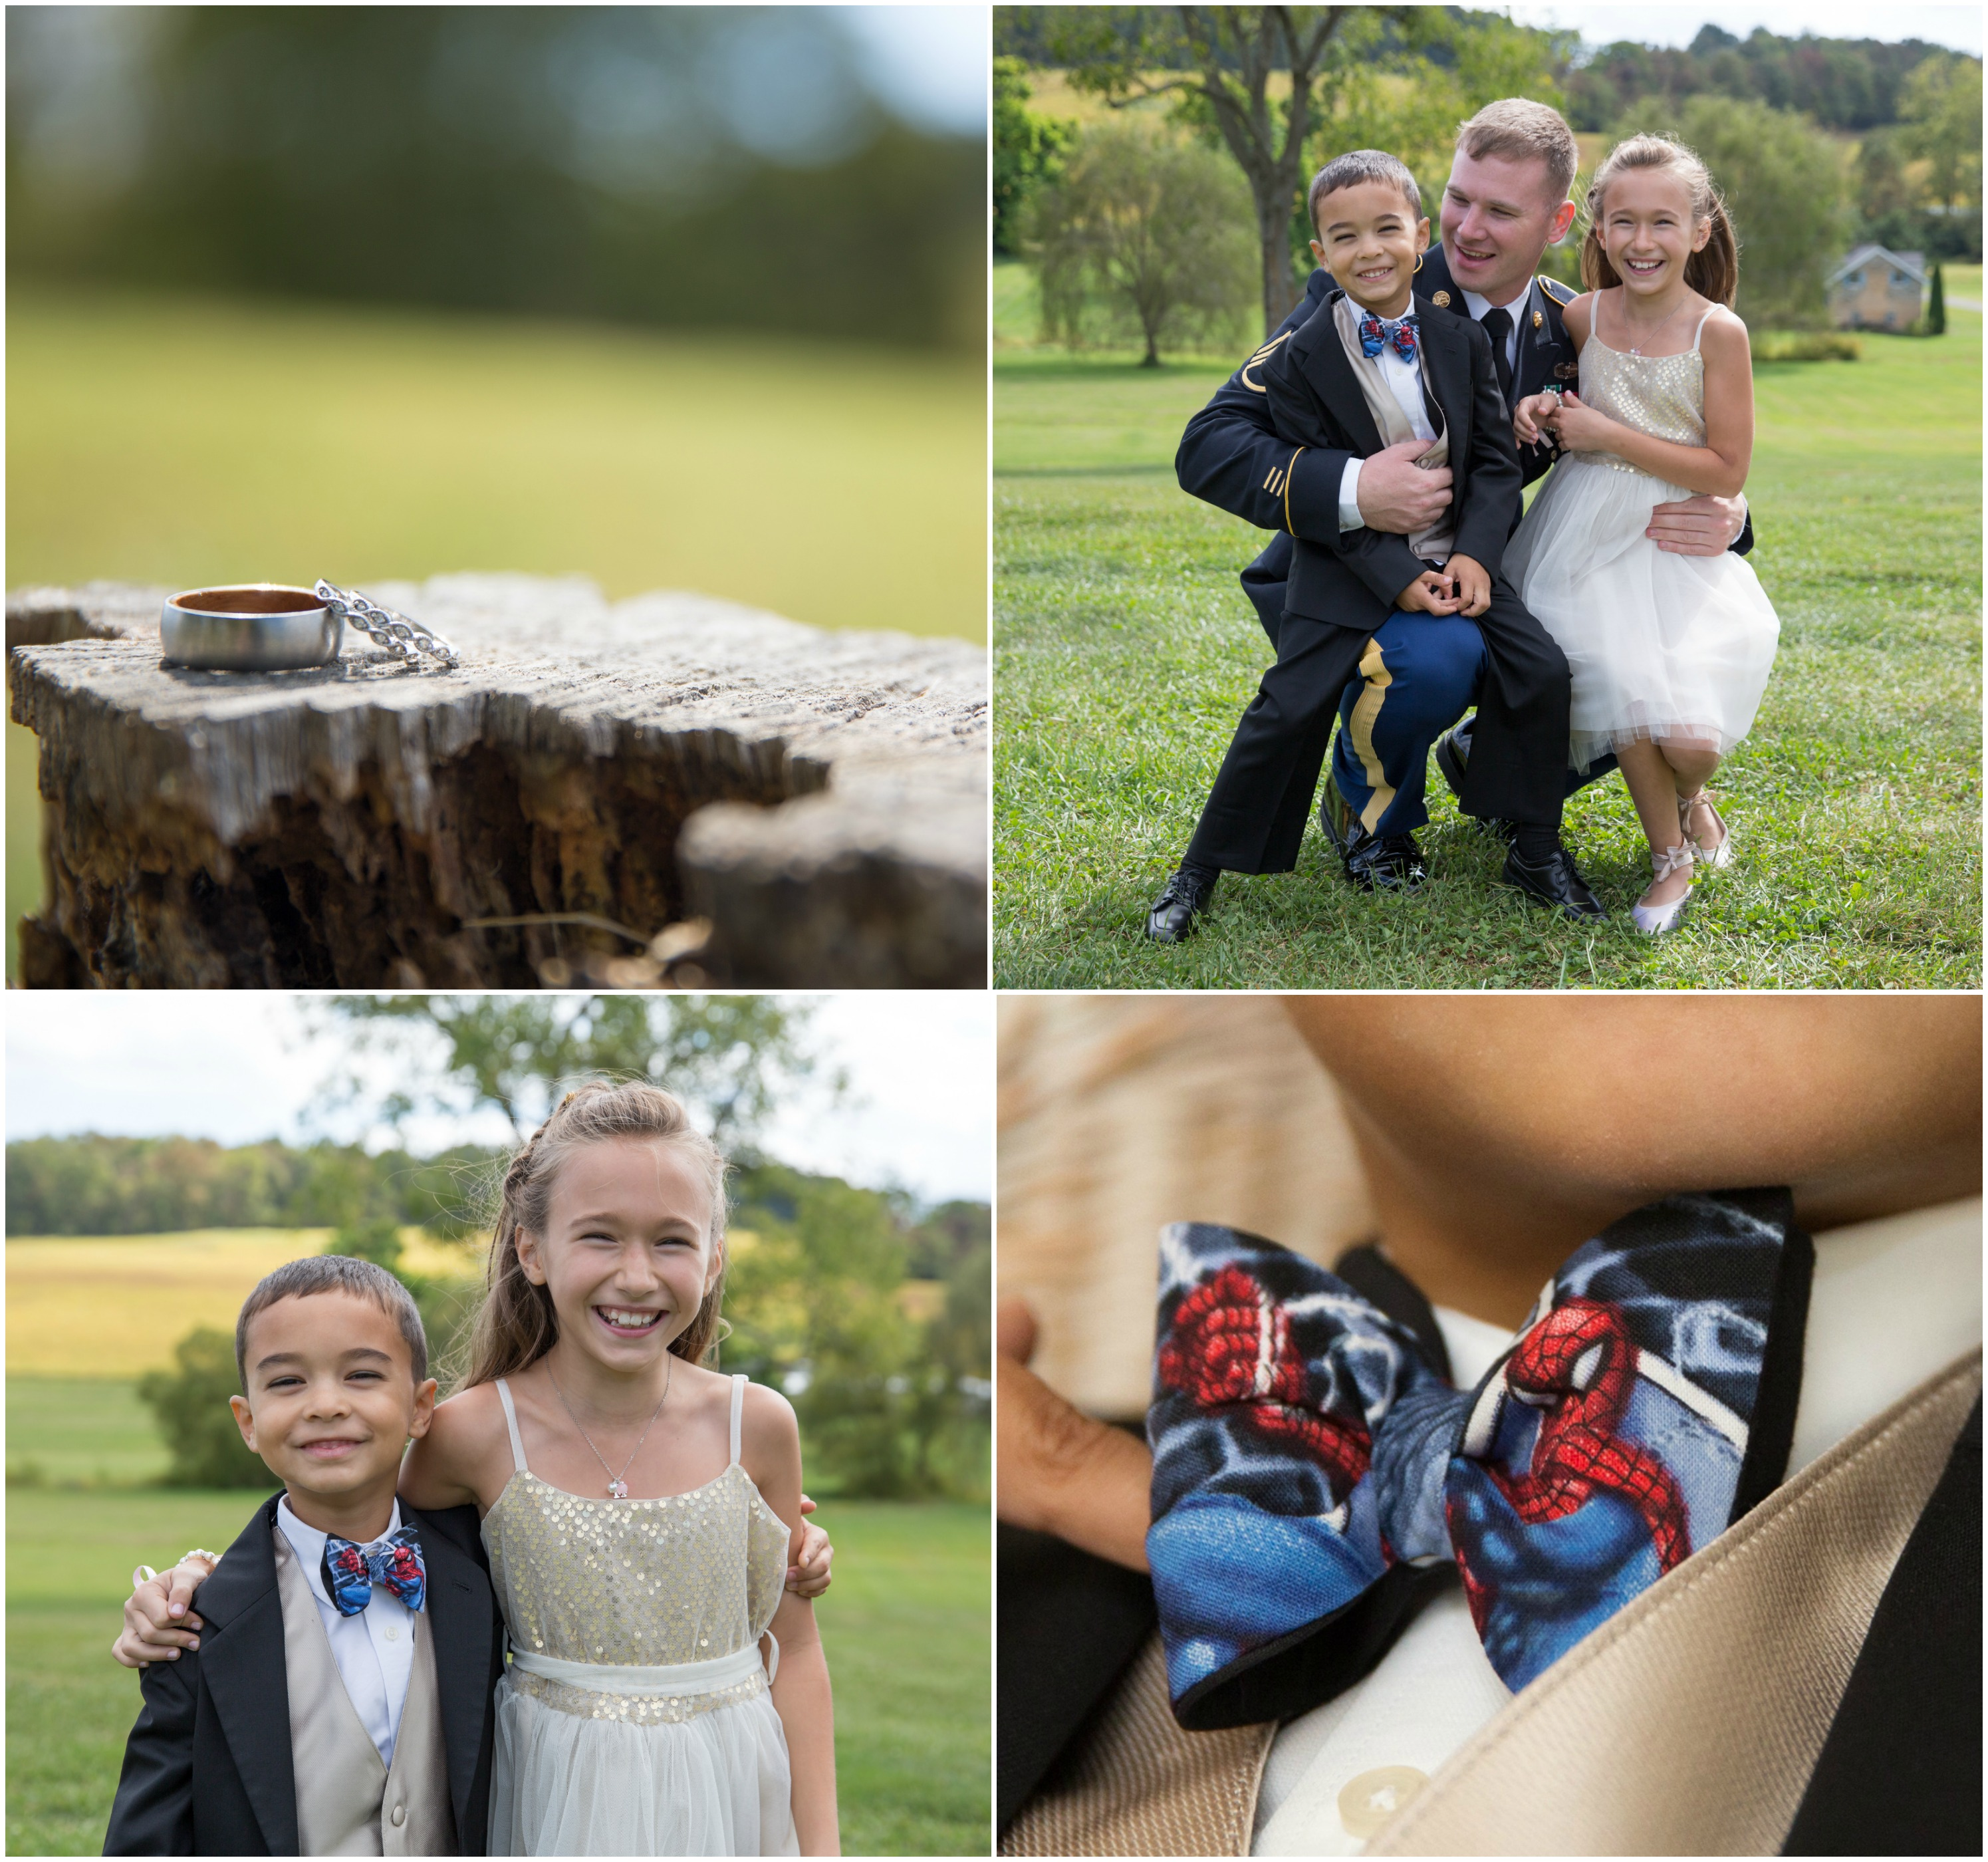 Ring bearer Spiderman bowtie and flower girl